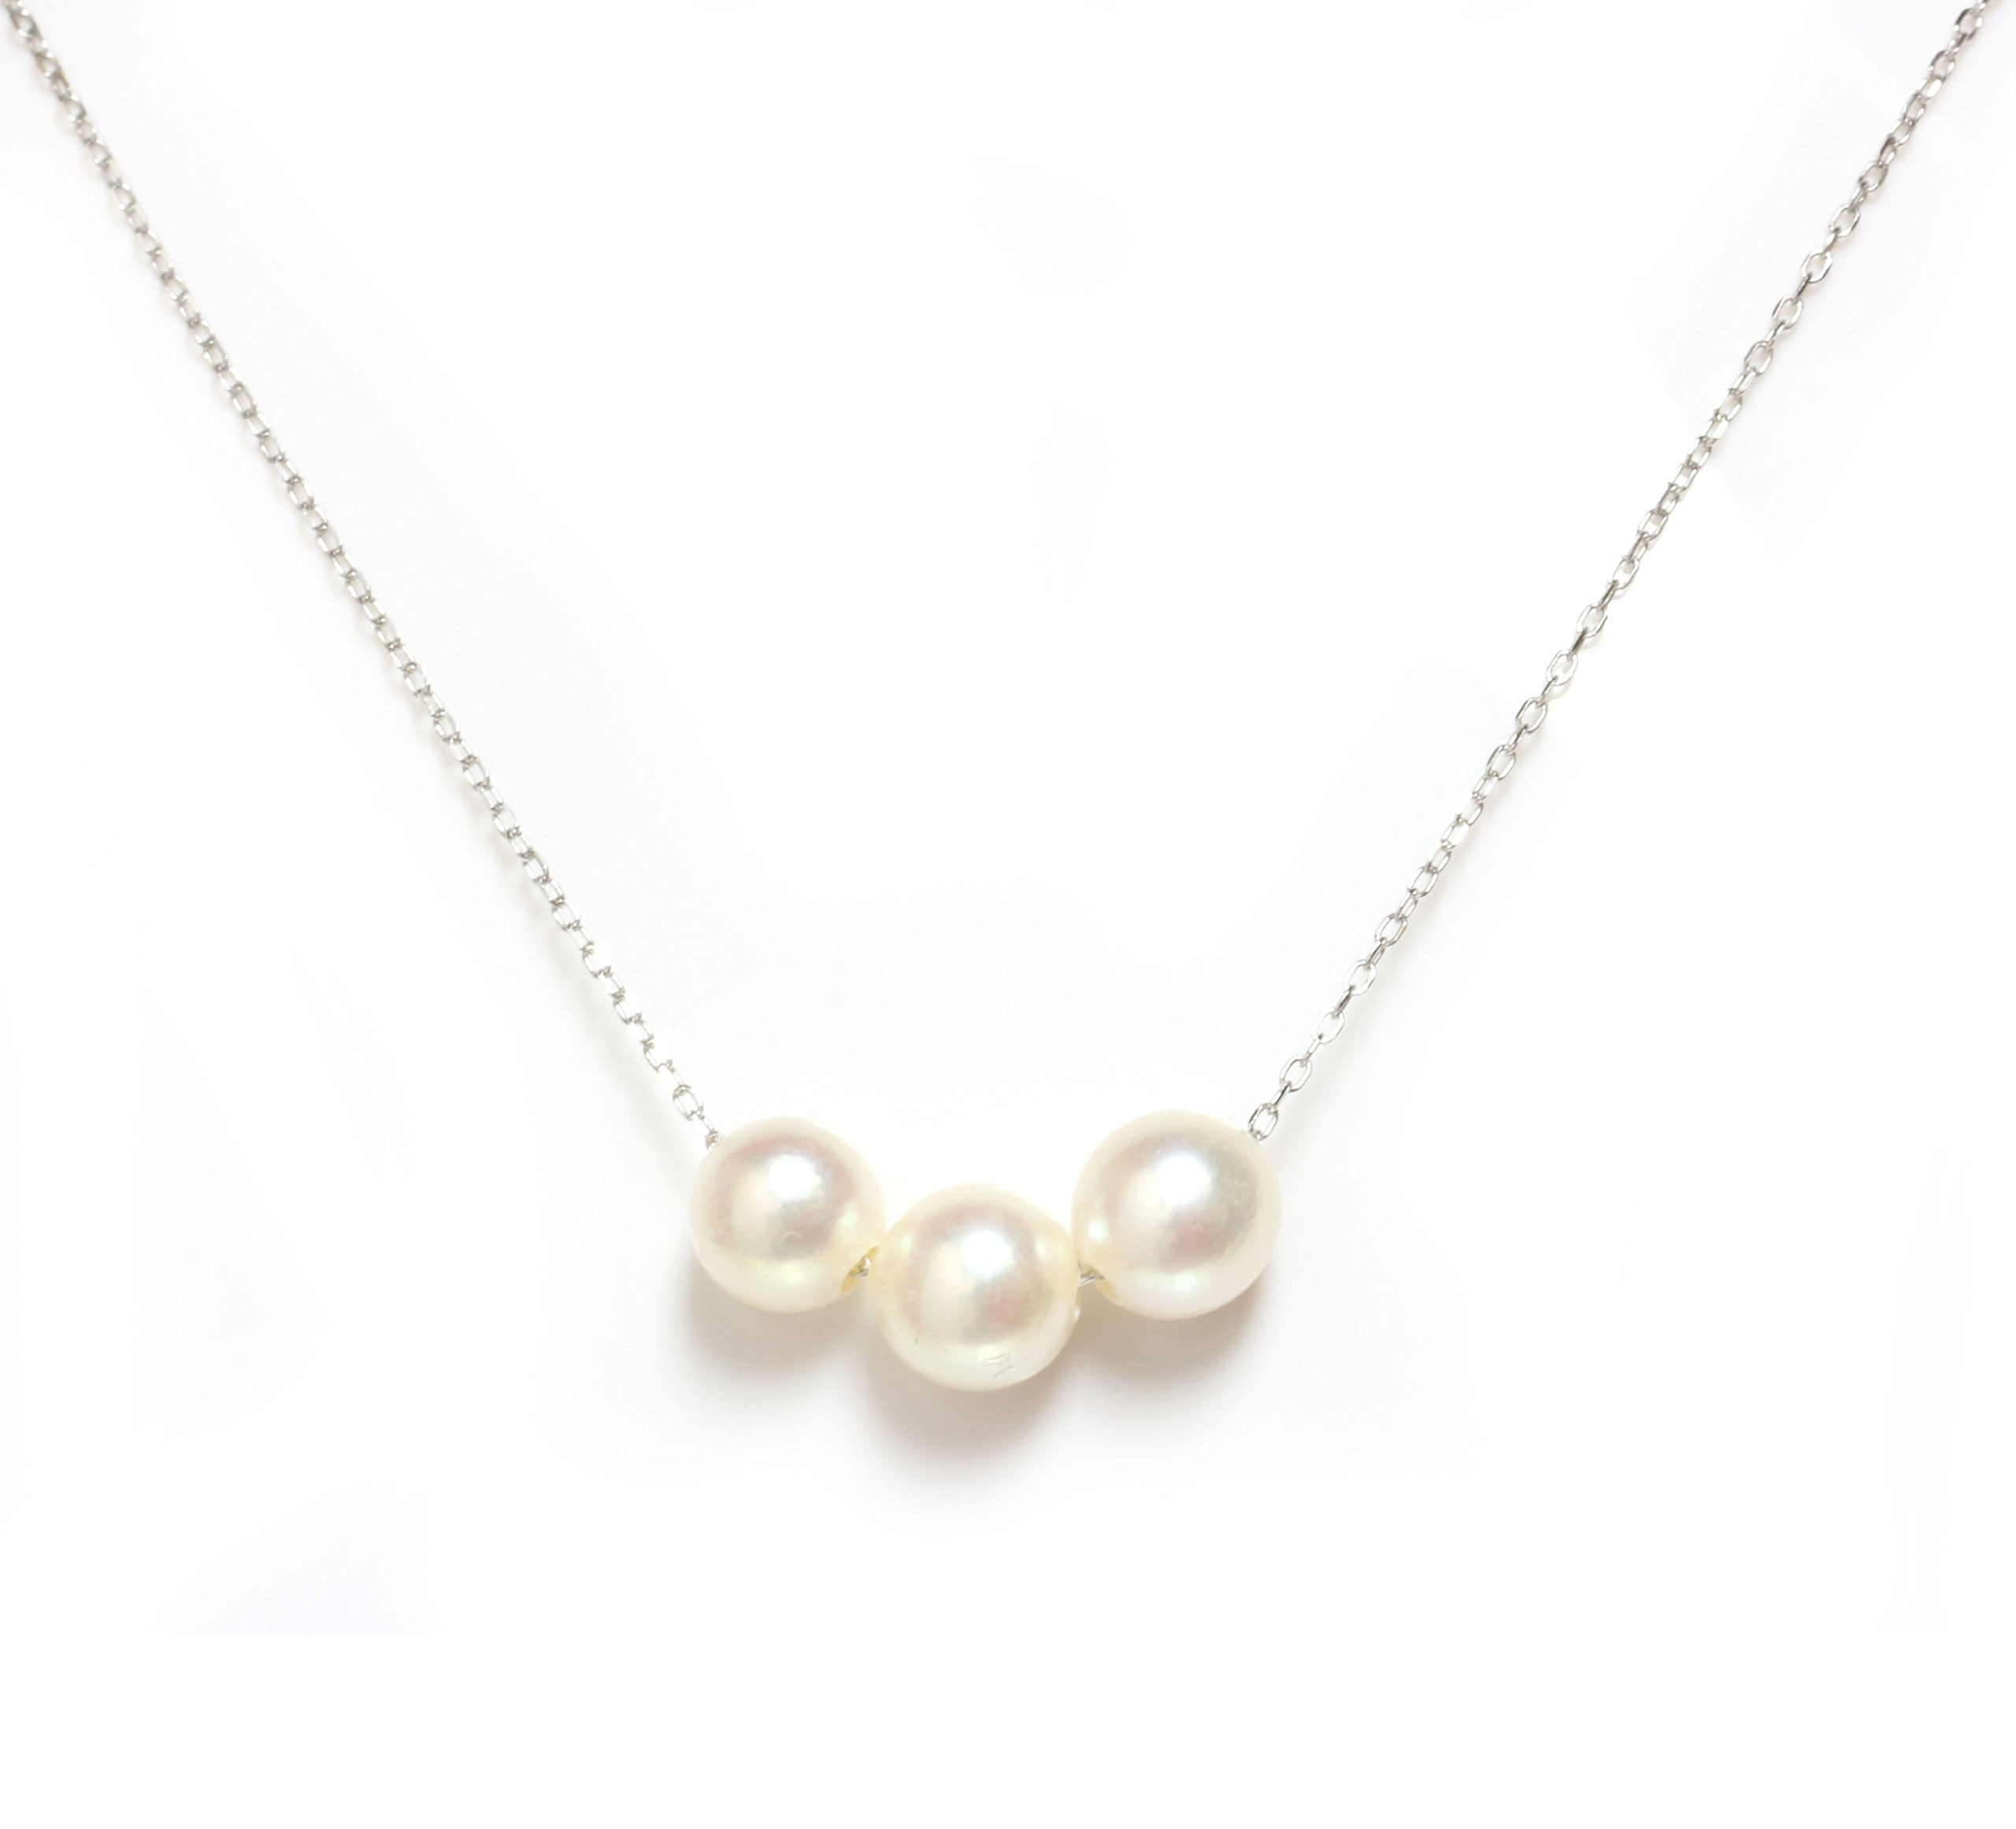 Akoya Pearl Necklace 7.5 - 8 MM 14kt Rose, White Or Yellow Gold chain 16'' or 18'' (18, white-gold)